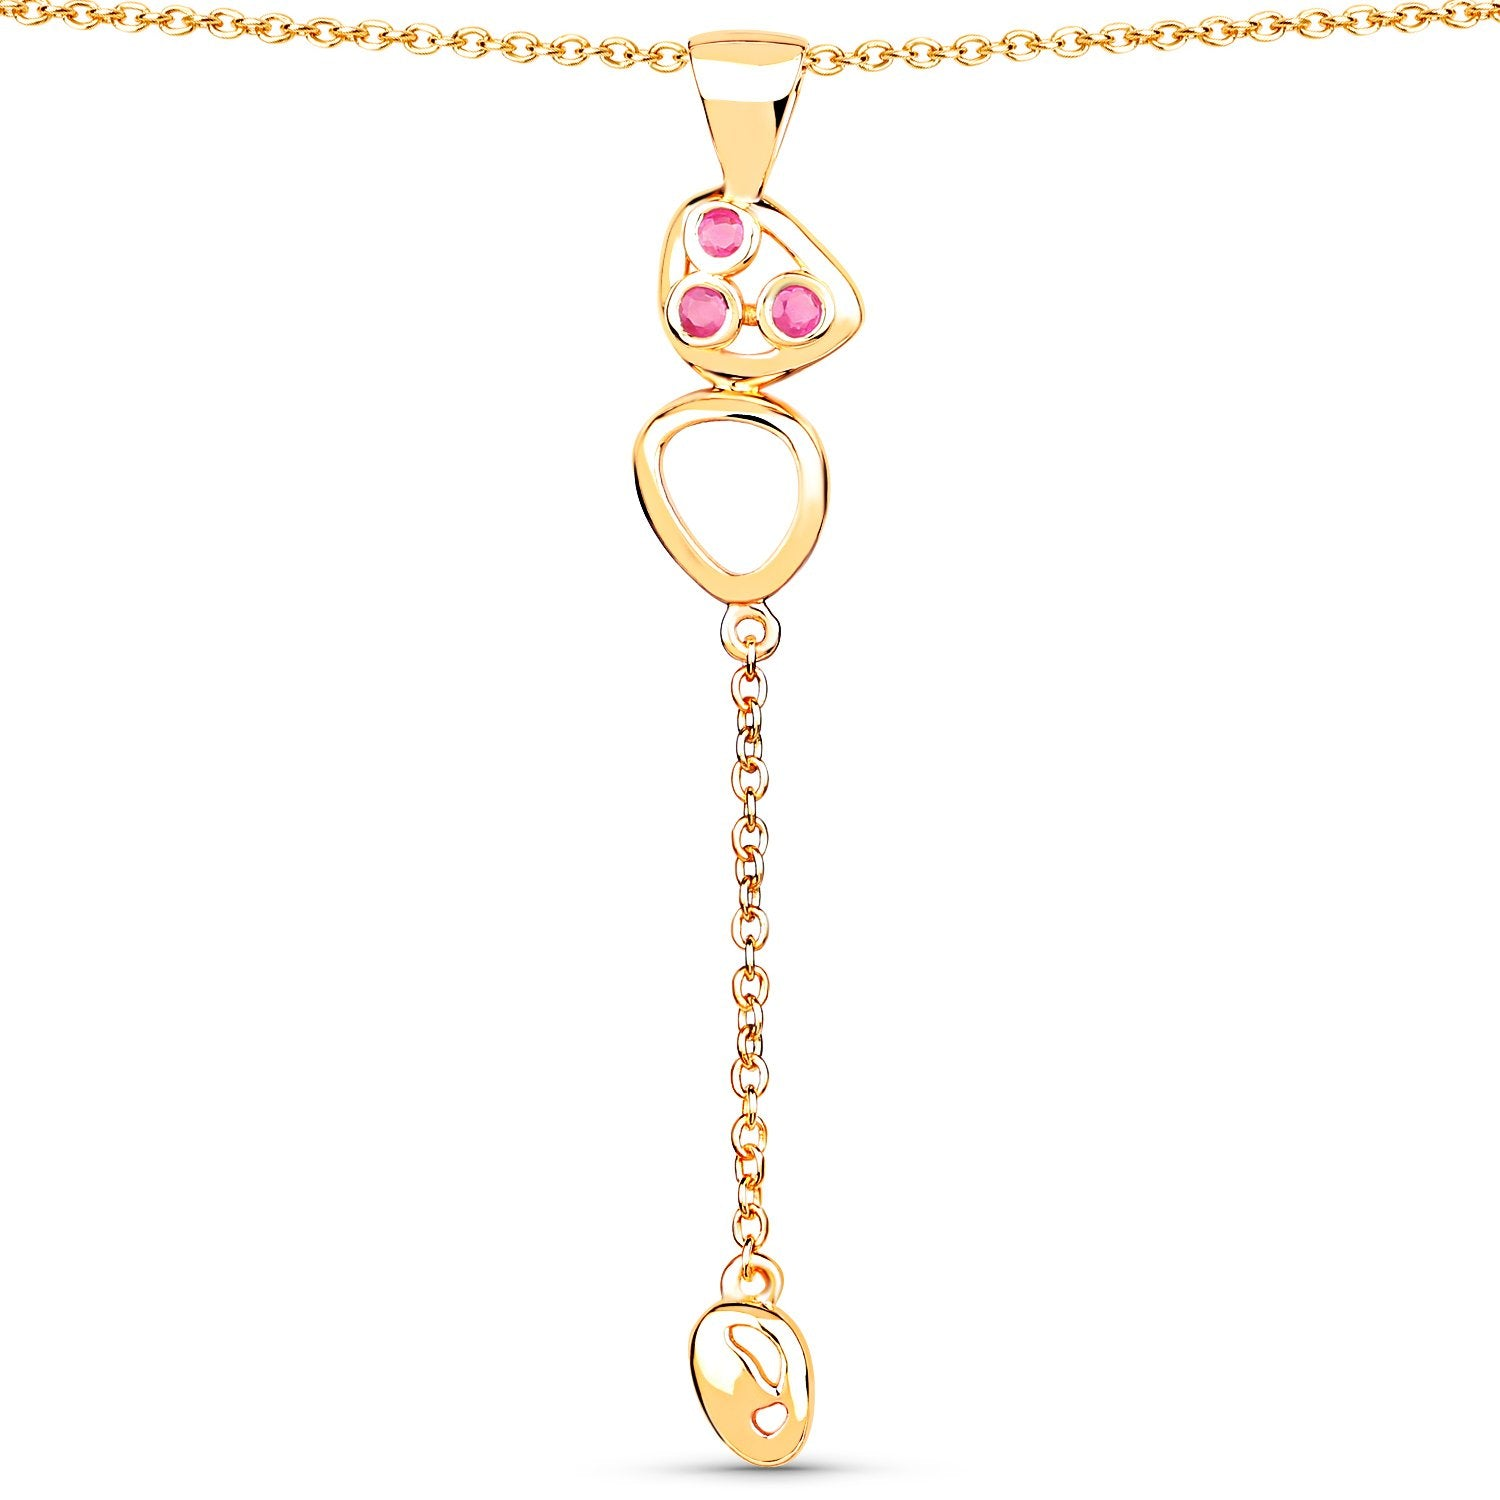 LoveHuang 0.14 Carats Genuine Ruby Golden Egg Pendant Solid .925 Sterling Silver With 18KT Yellow Gold Plating, 18Inch Chain